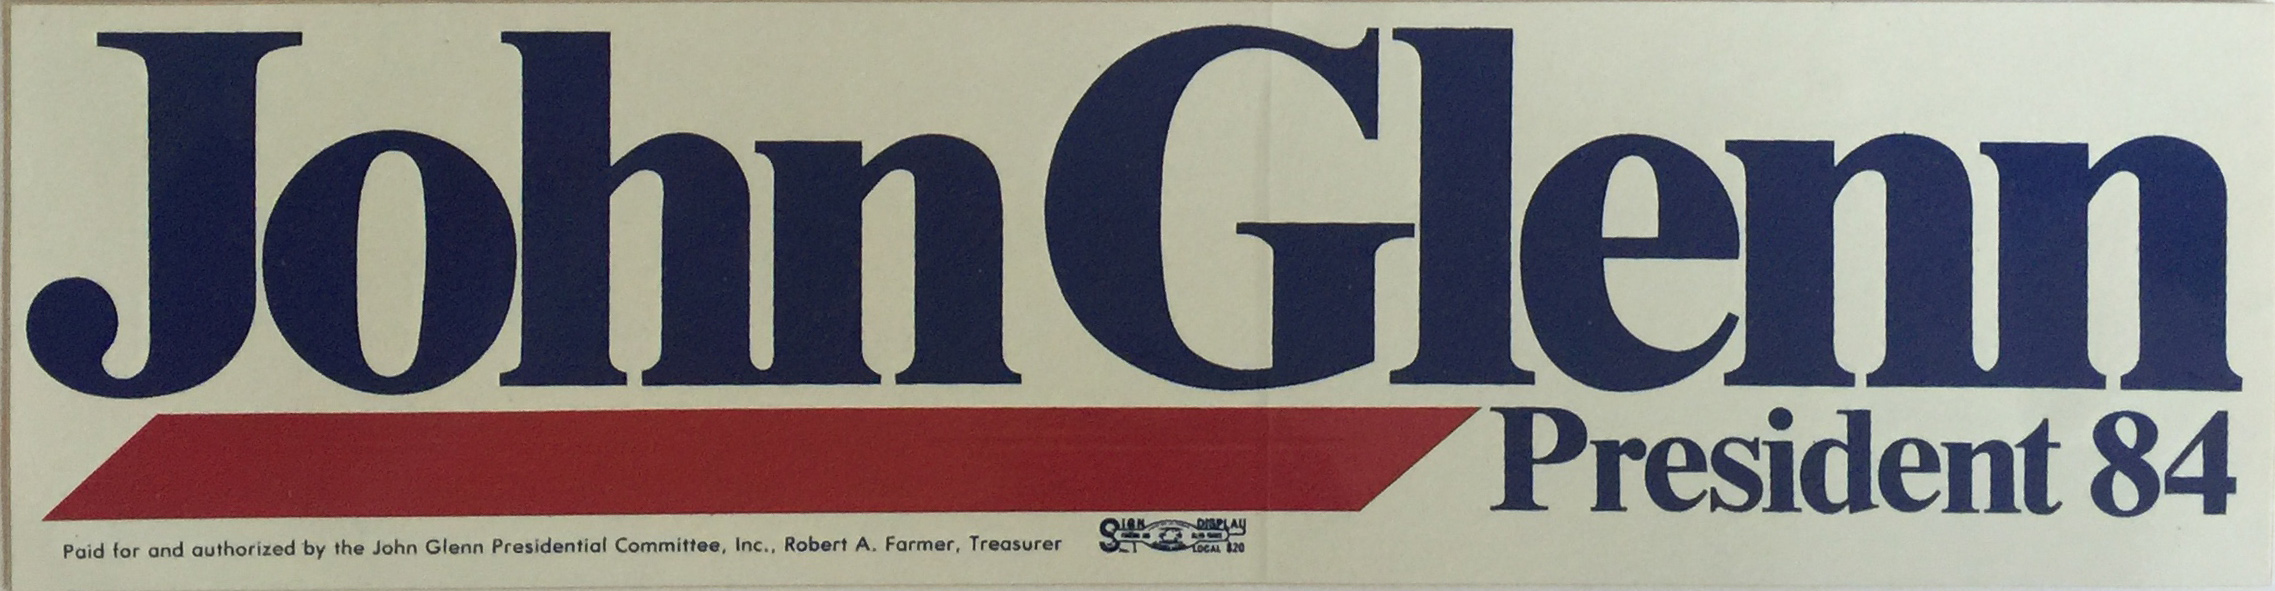 STICKER-pres1984 GLENN.jpg